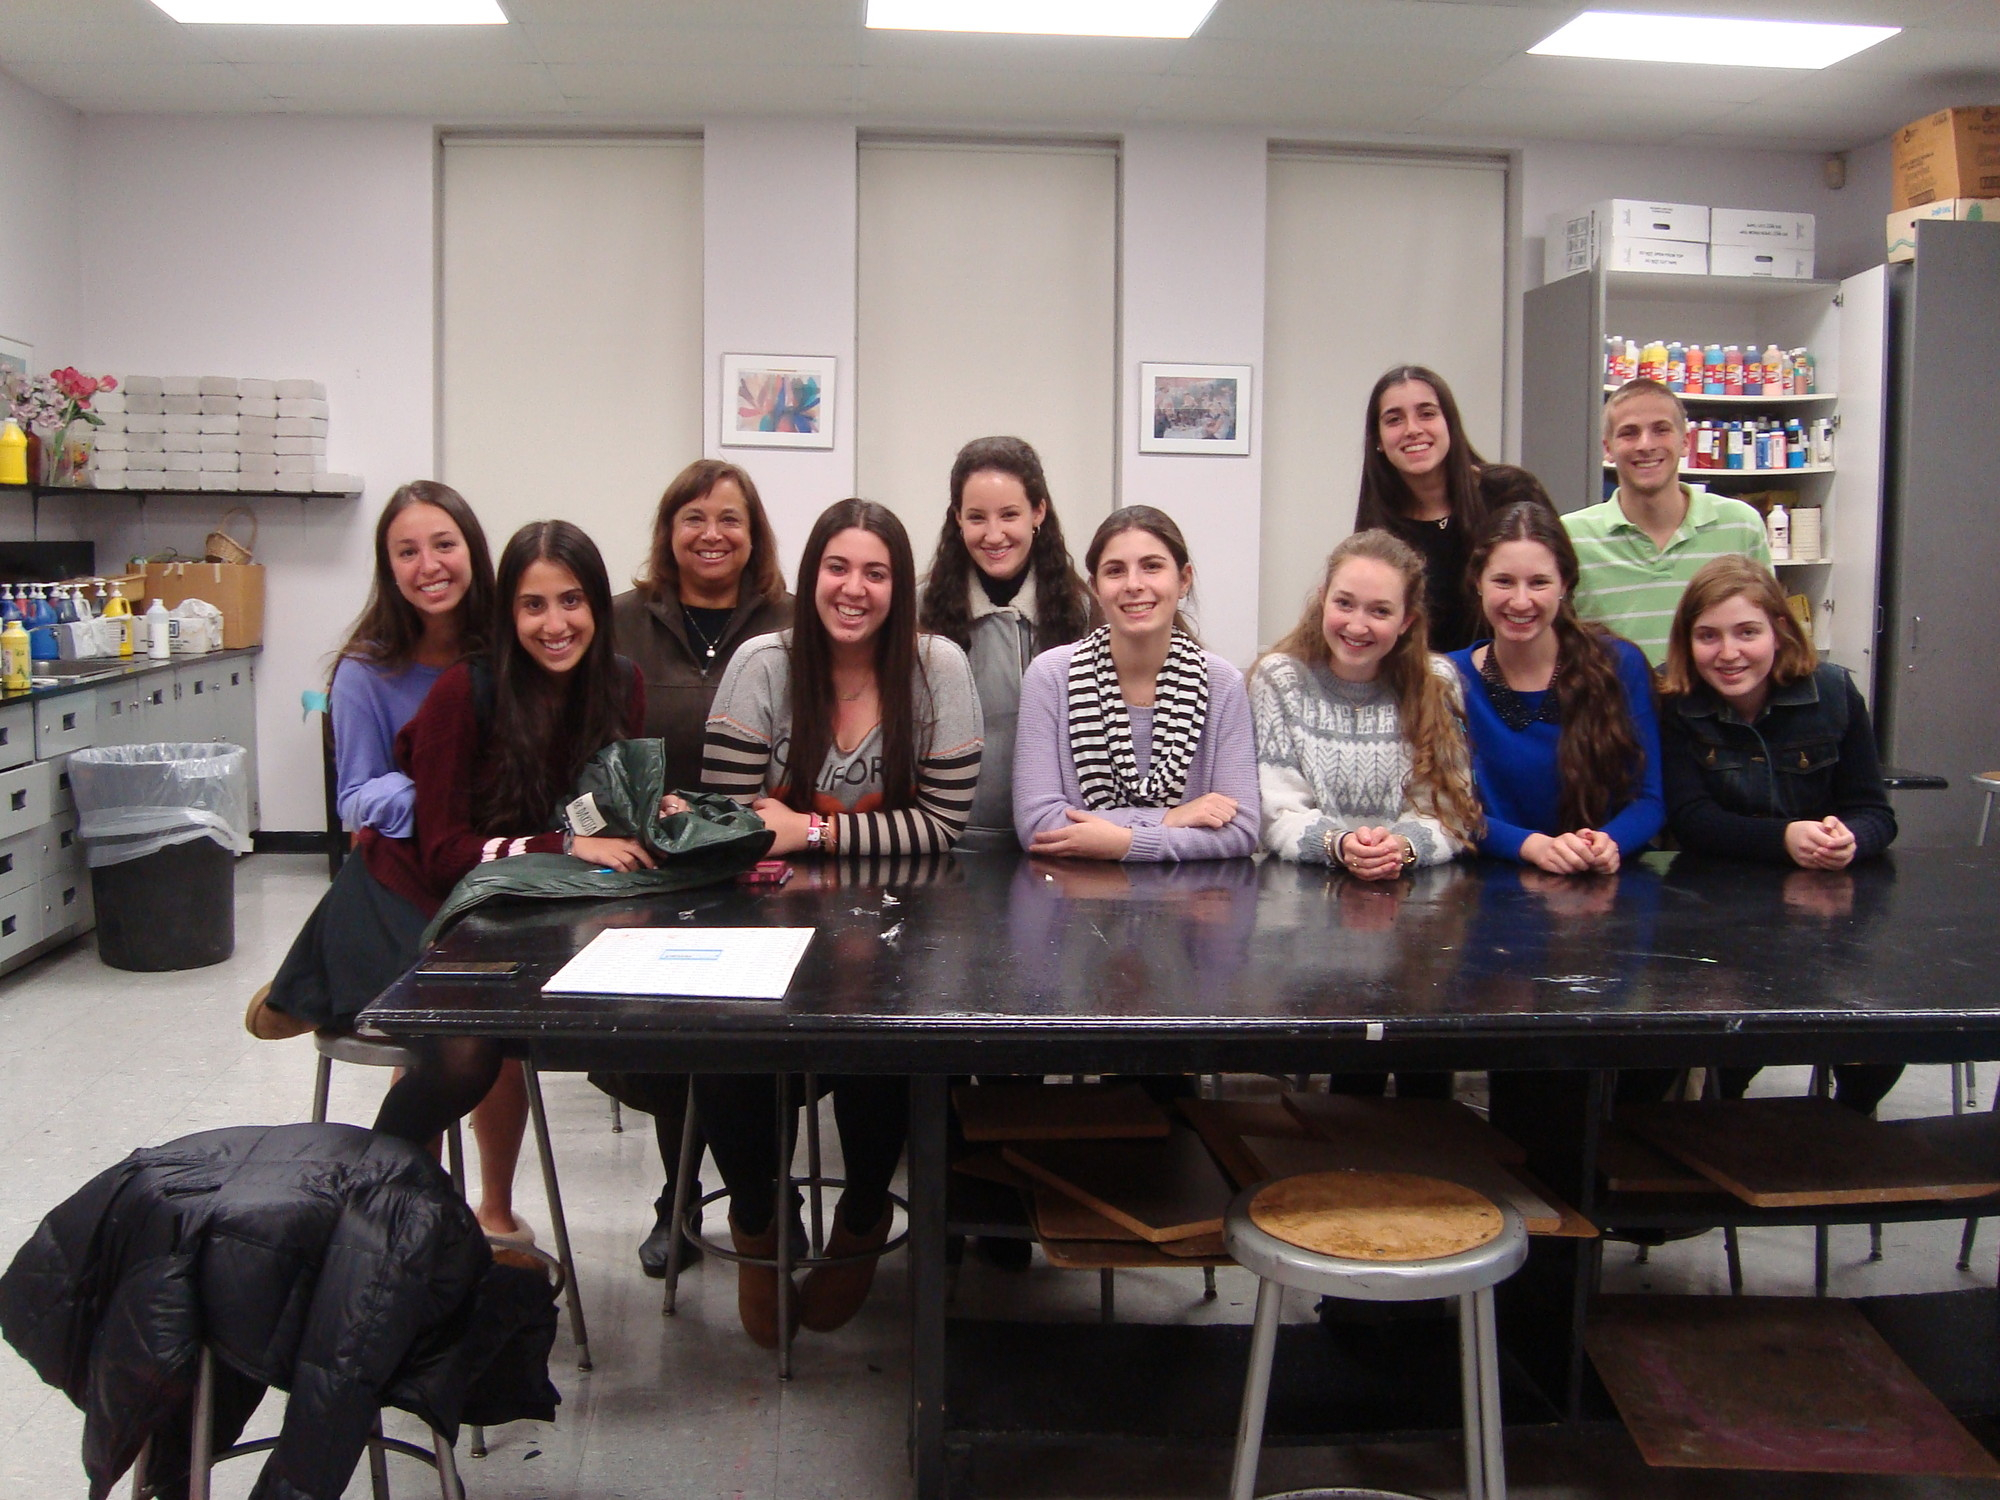 Juniors in HAFTR's Art Institute program learned about Parsons School of Design from alum Jodi Cooperberg, fifth from left. Teacher Dale Malekoff is third from left.